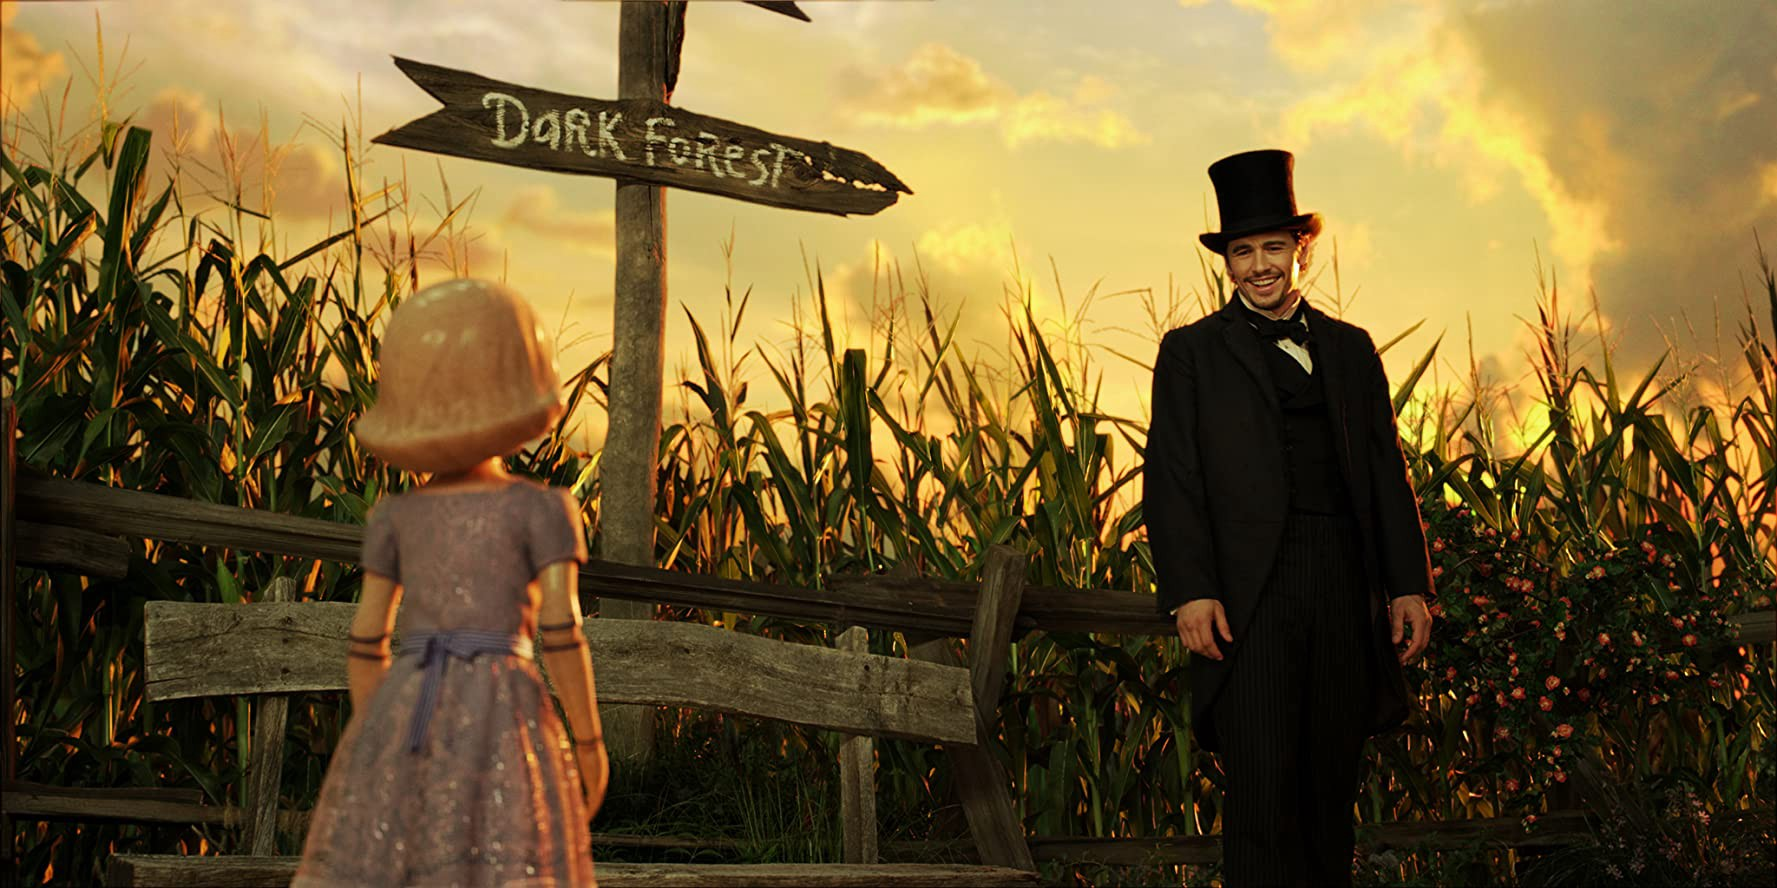 oz the great and powerful full movie online free